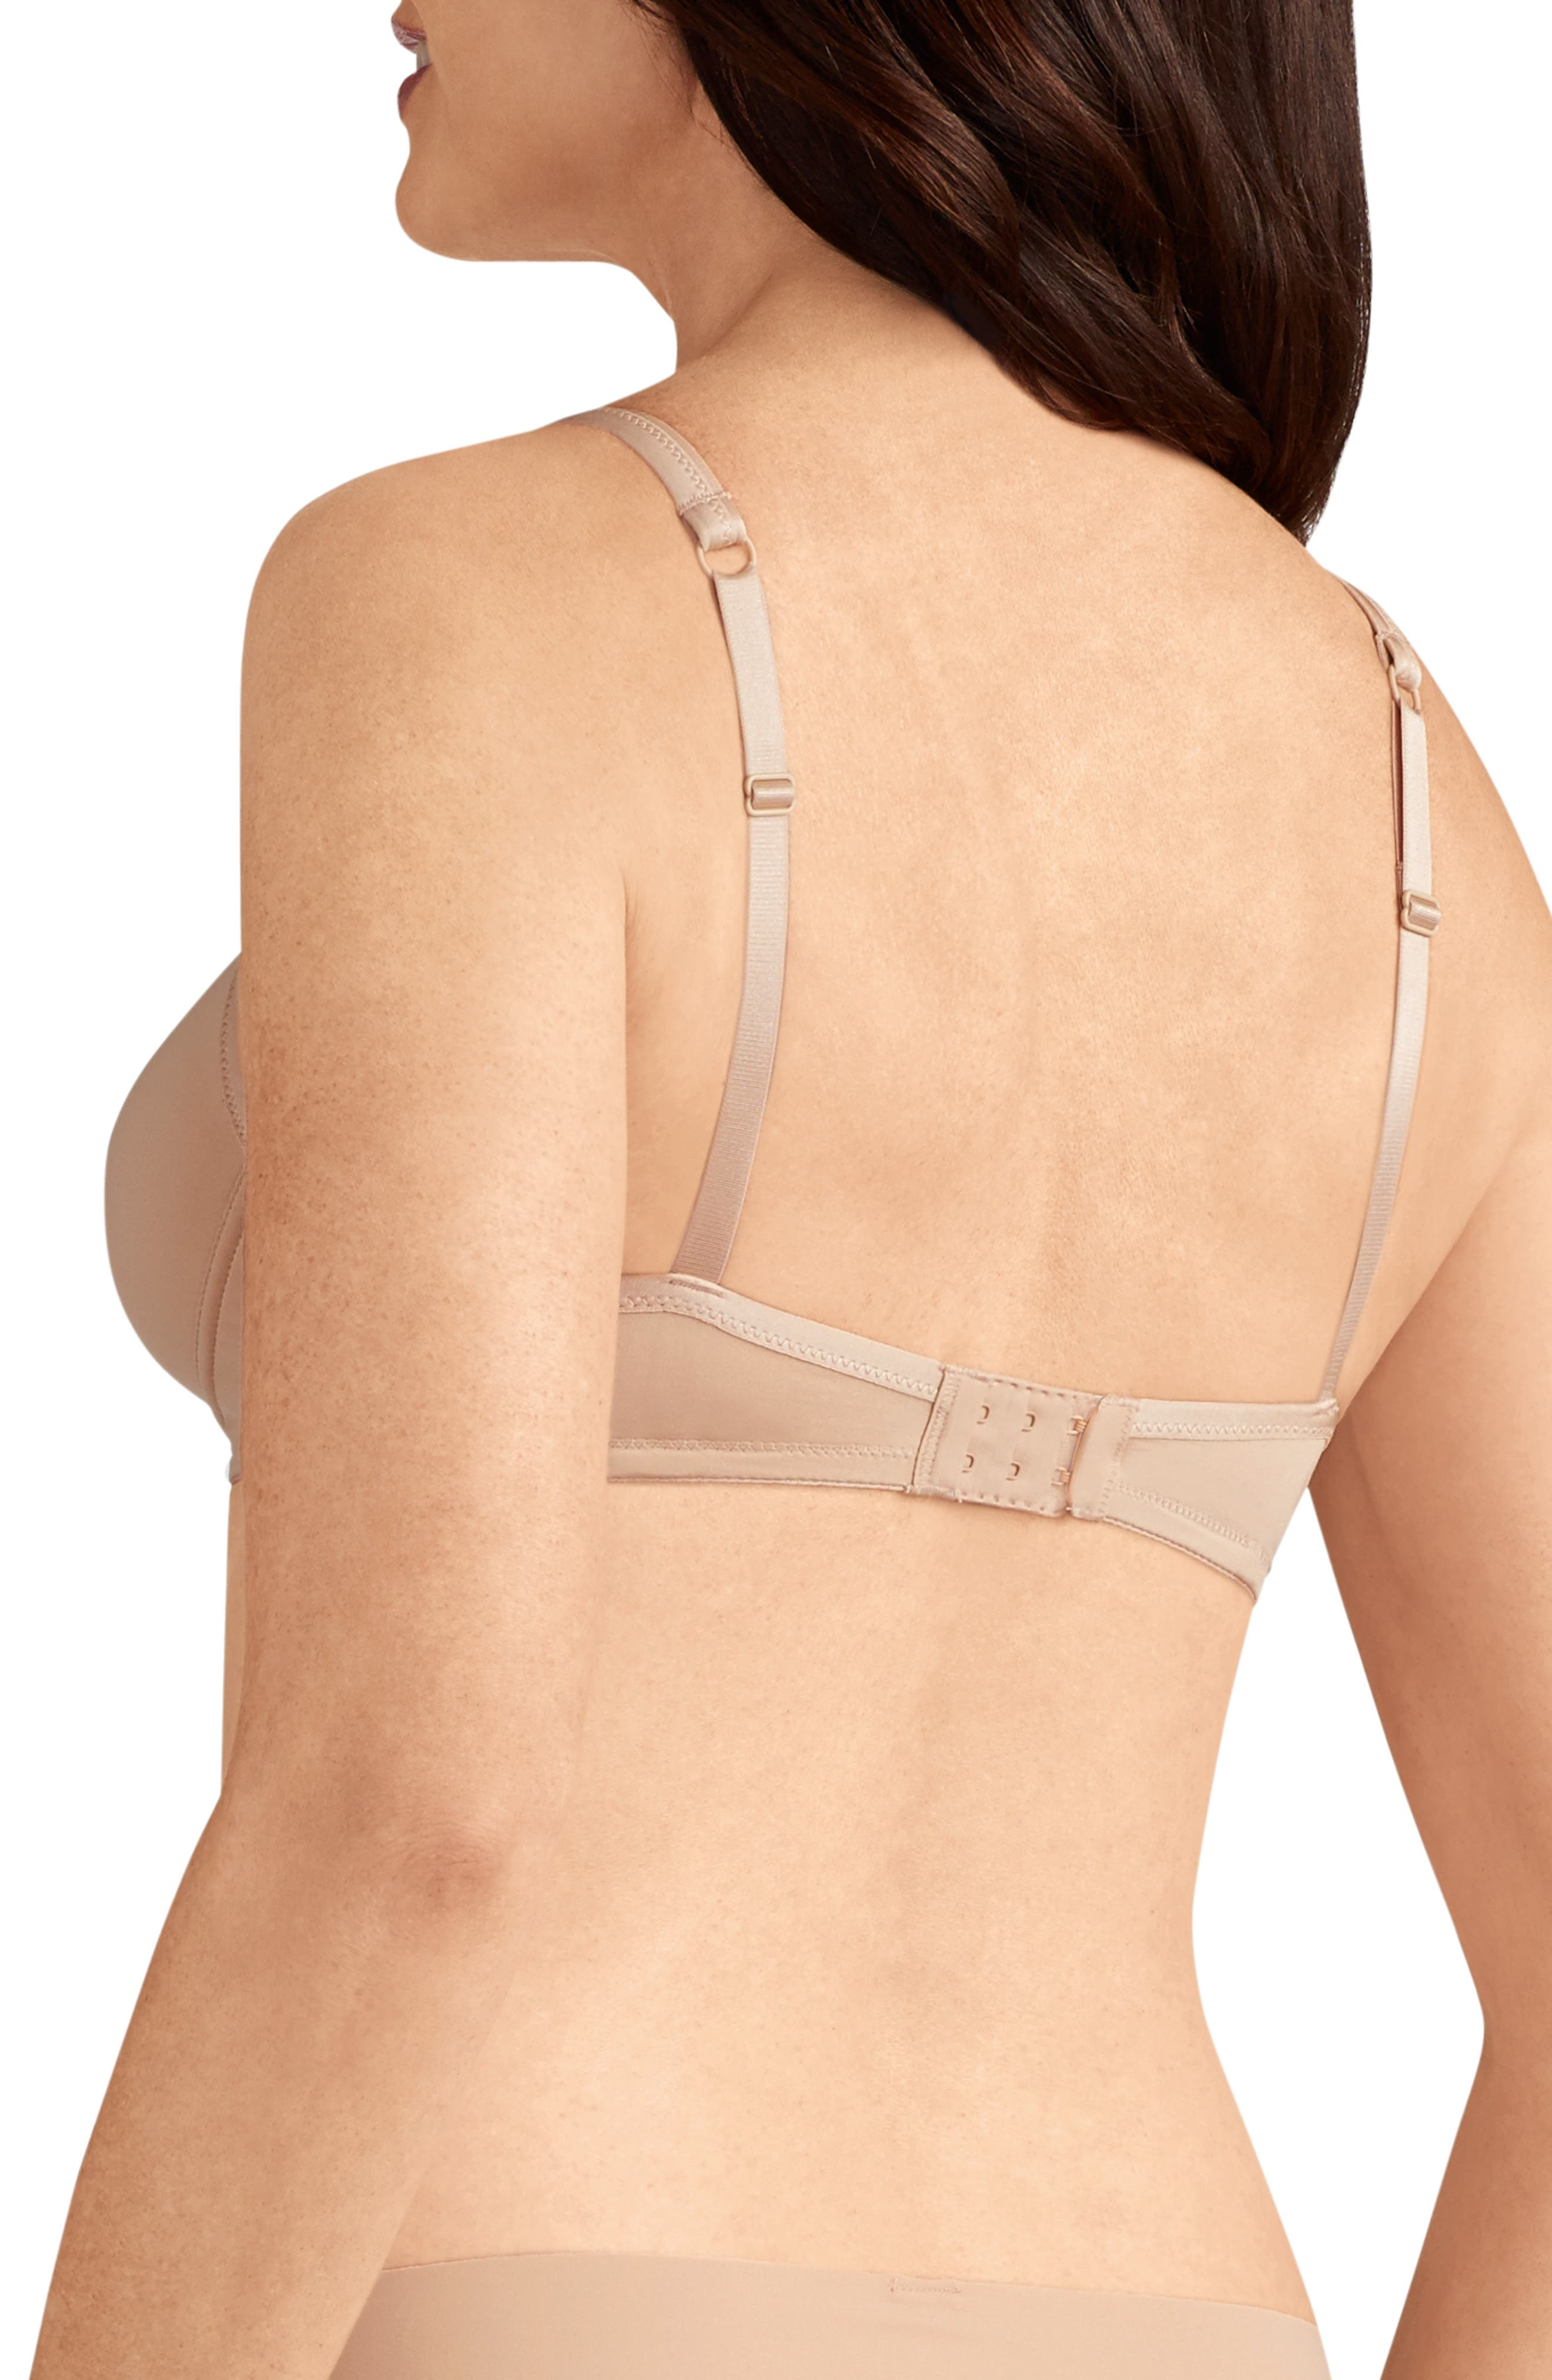 Alternate Image 2  - AMOENA 'Lara' Soft Cup Bra